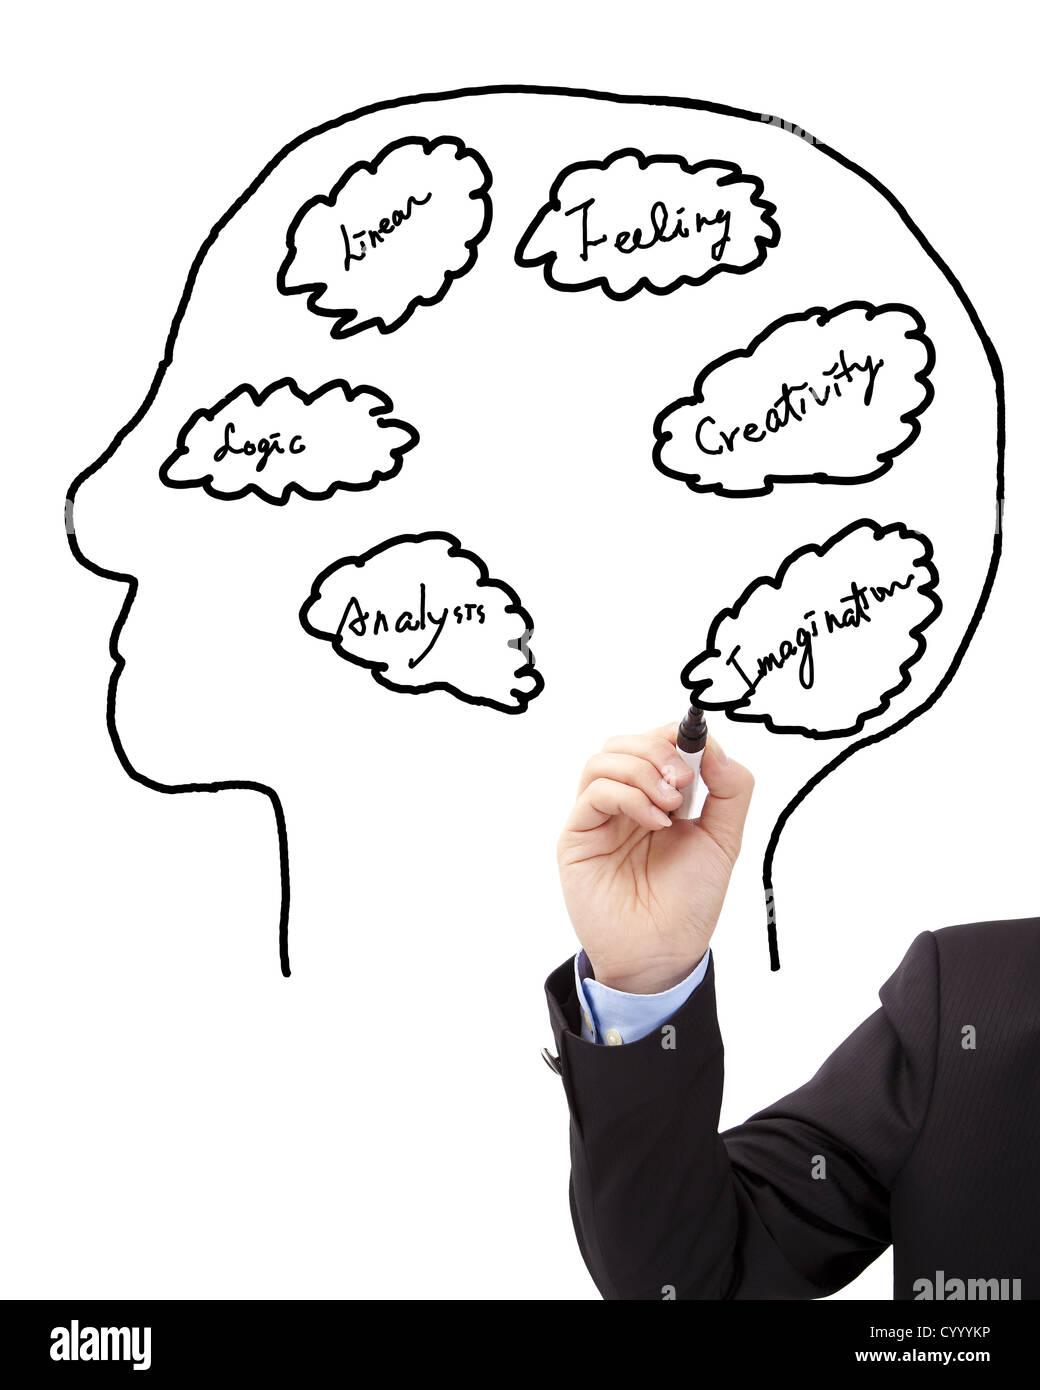 Brain drawing stock photos brain drawing stock images alamy businessmans hand draw brain concept diagram stock image ccuart Image collections